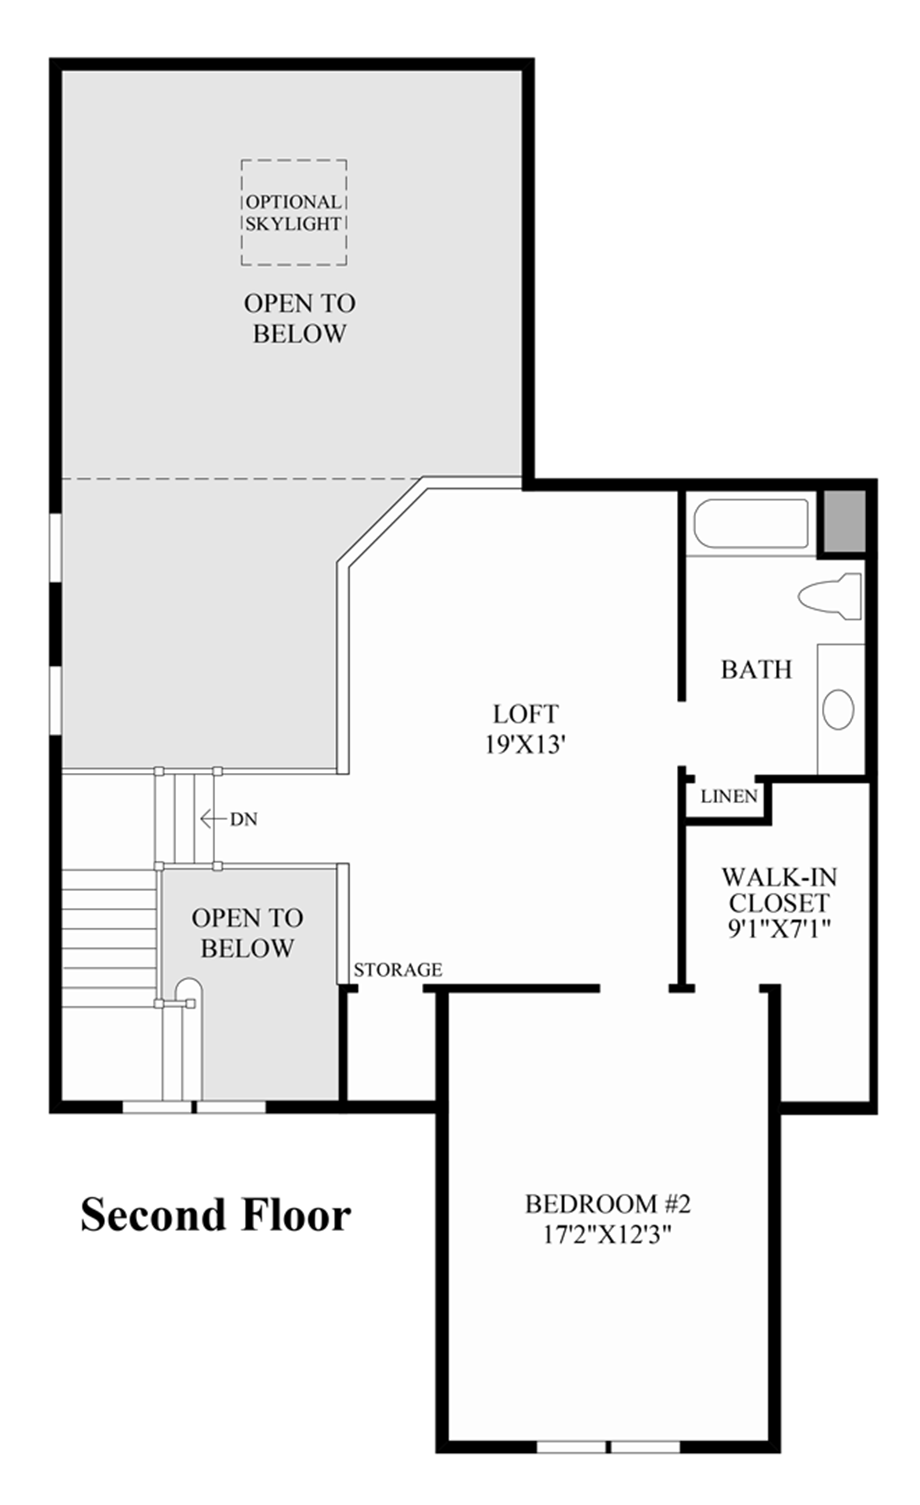 Ridgewood at middlebury the tamarack home design for Floor plans middlebury